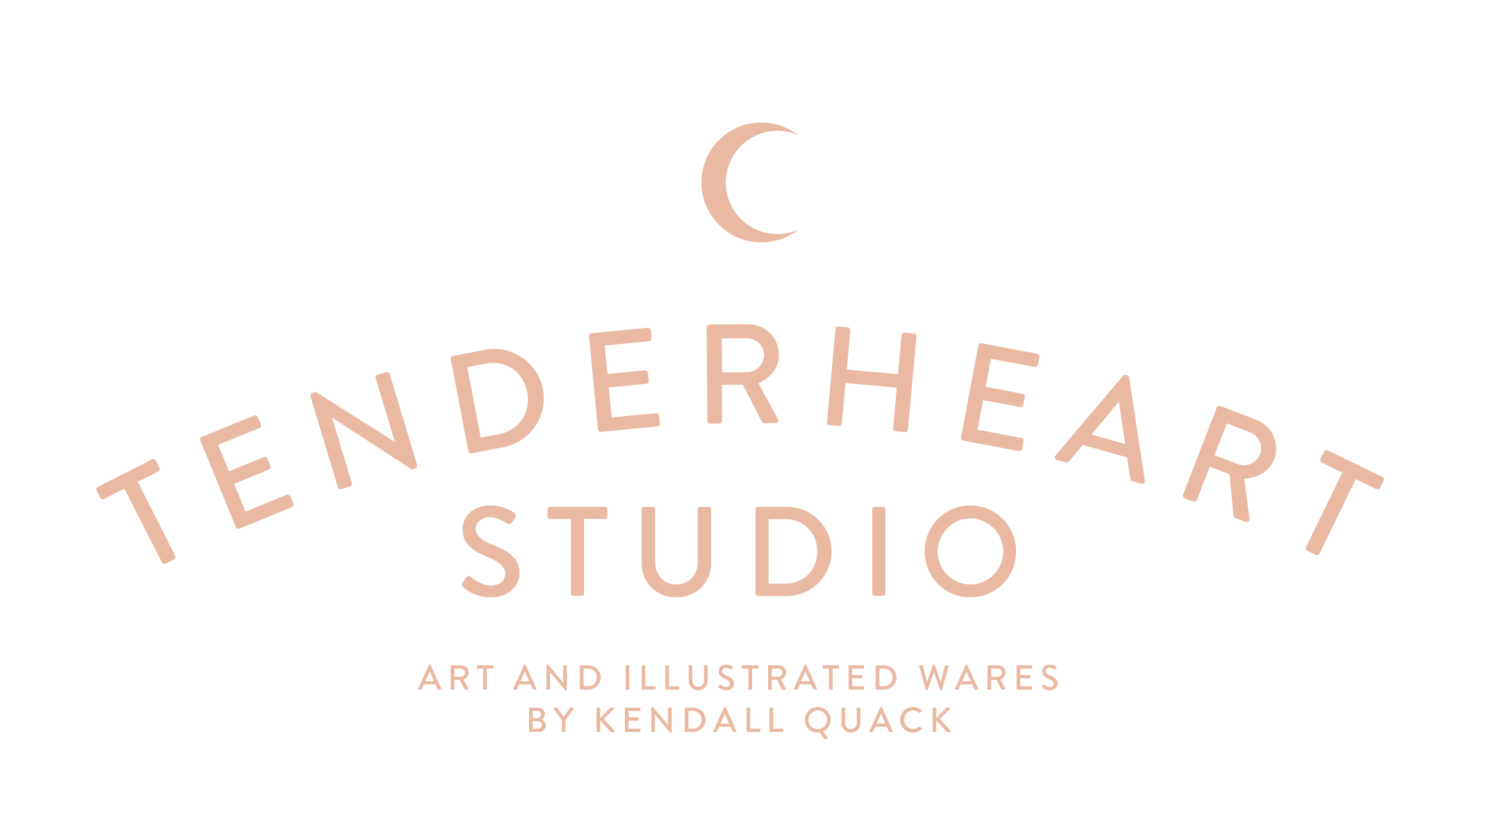 Tenderheart Studio